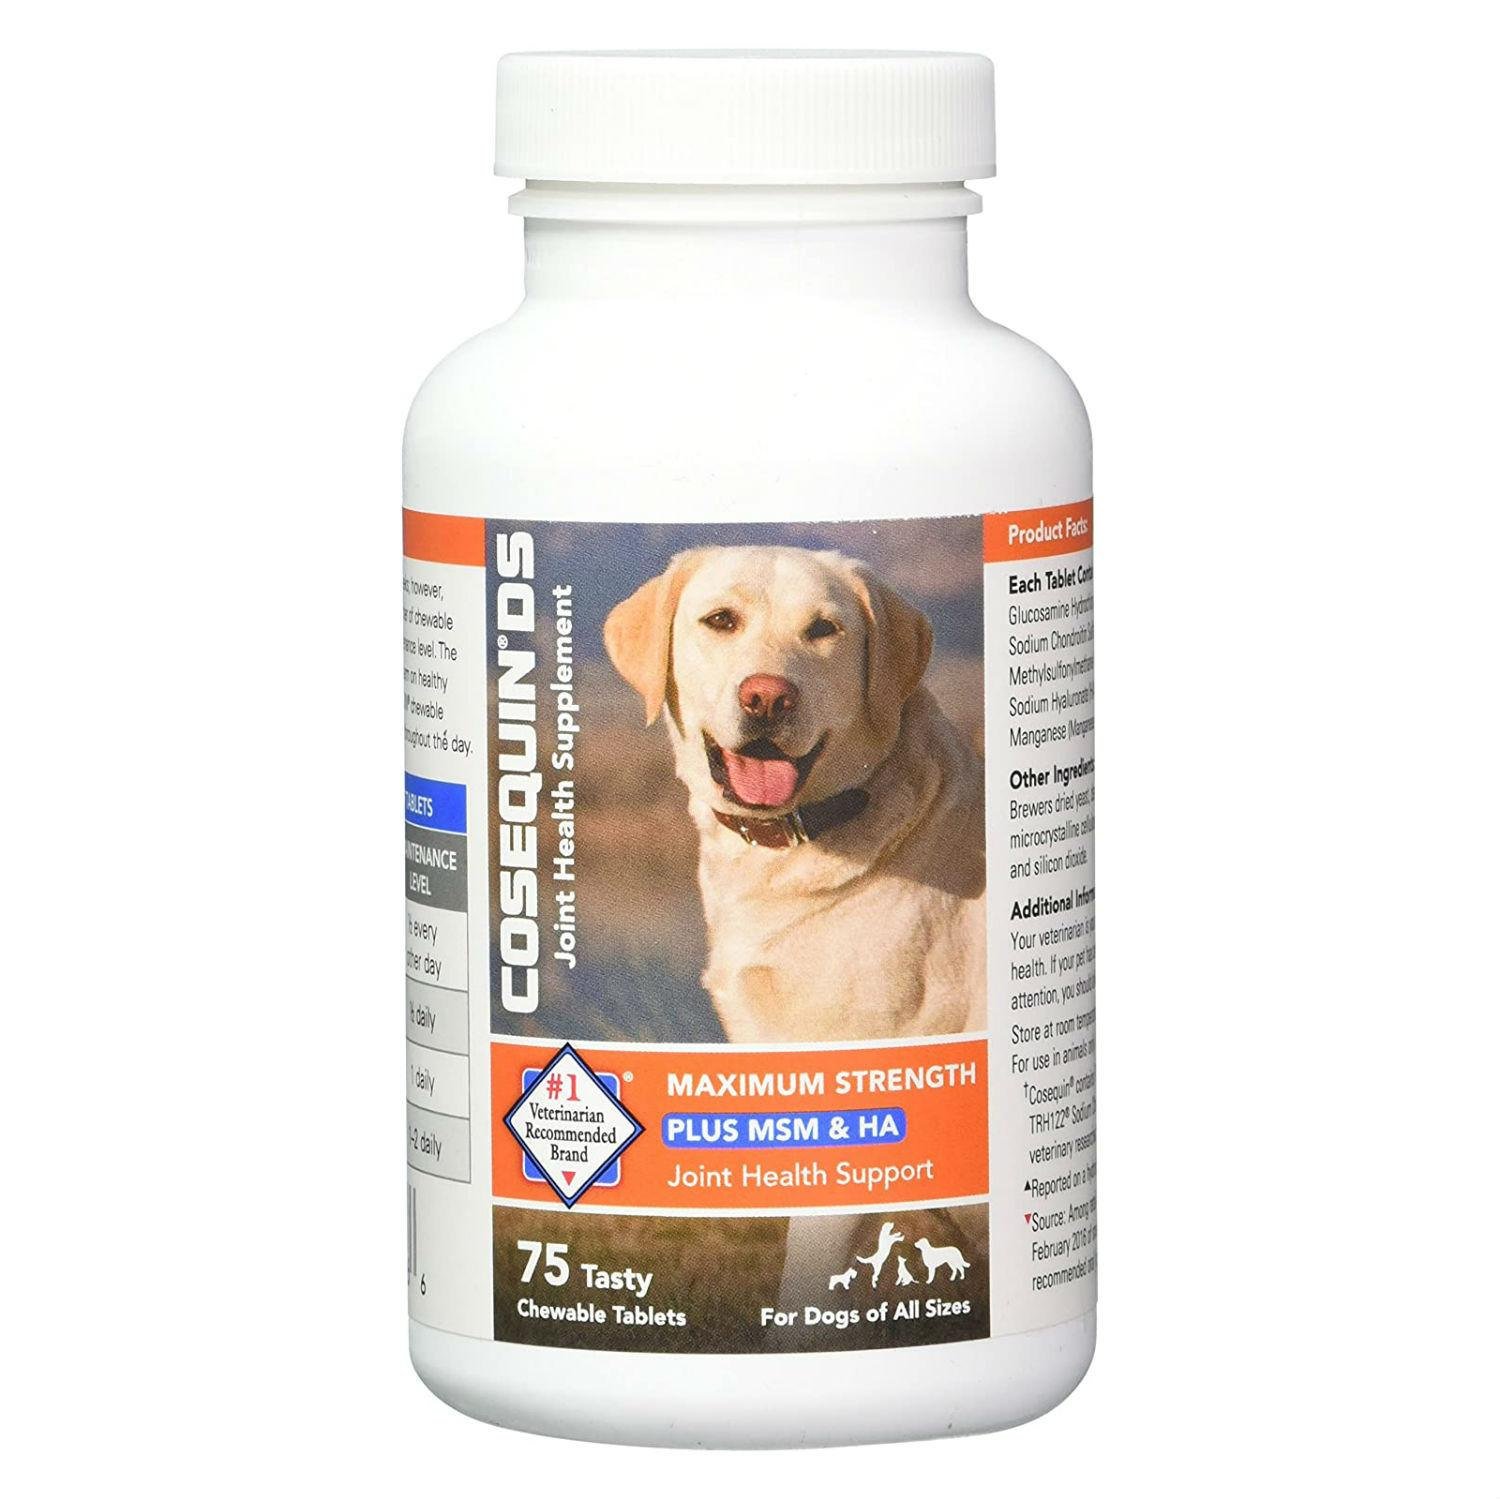 Cosequin®️ DS Plus MSM & Hyaluronic Acid (HA) Maximum Strength Dog Joint Health Supplement by Nutramax®️